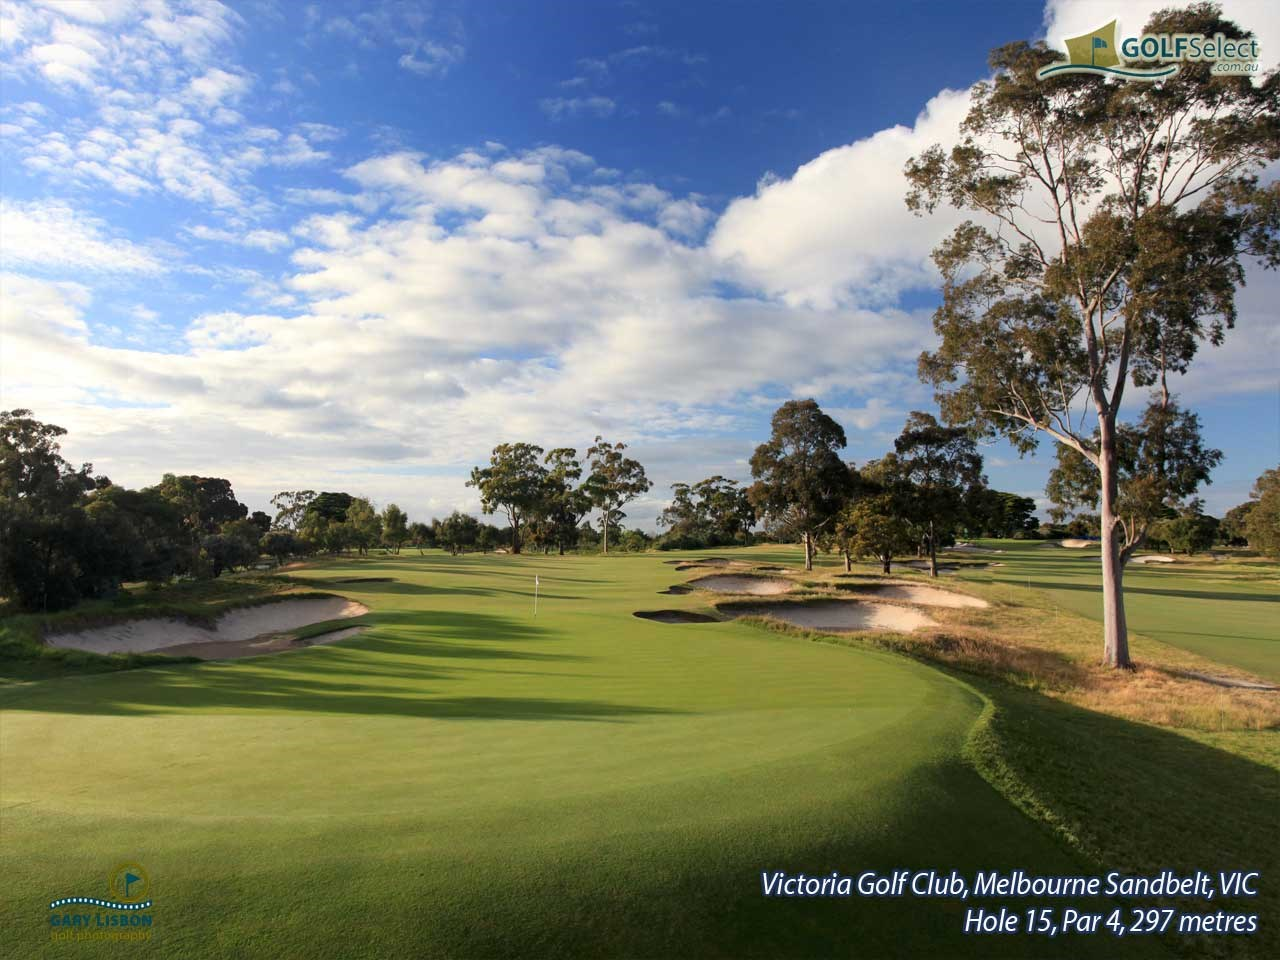 Victoria Golf Club Hole 15, Par 4, 297 metres